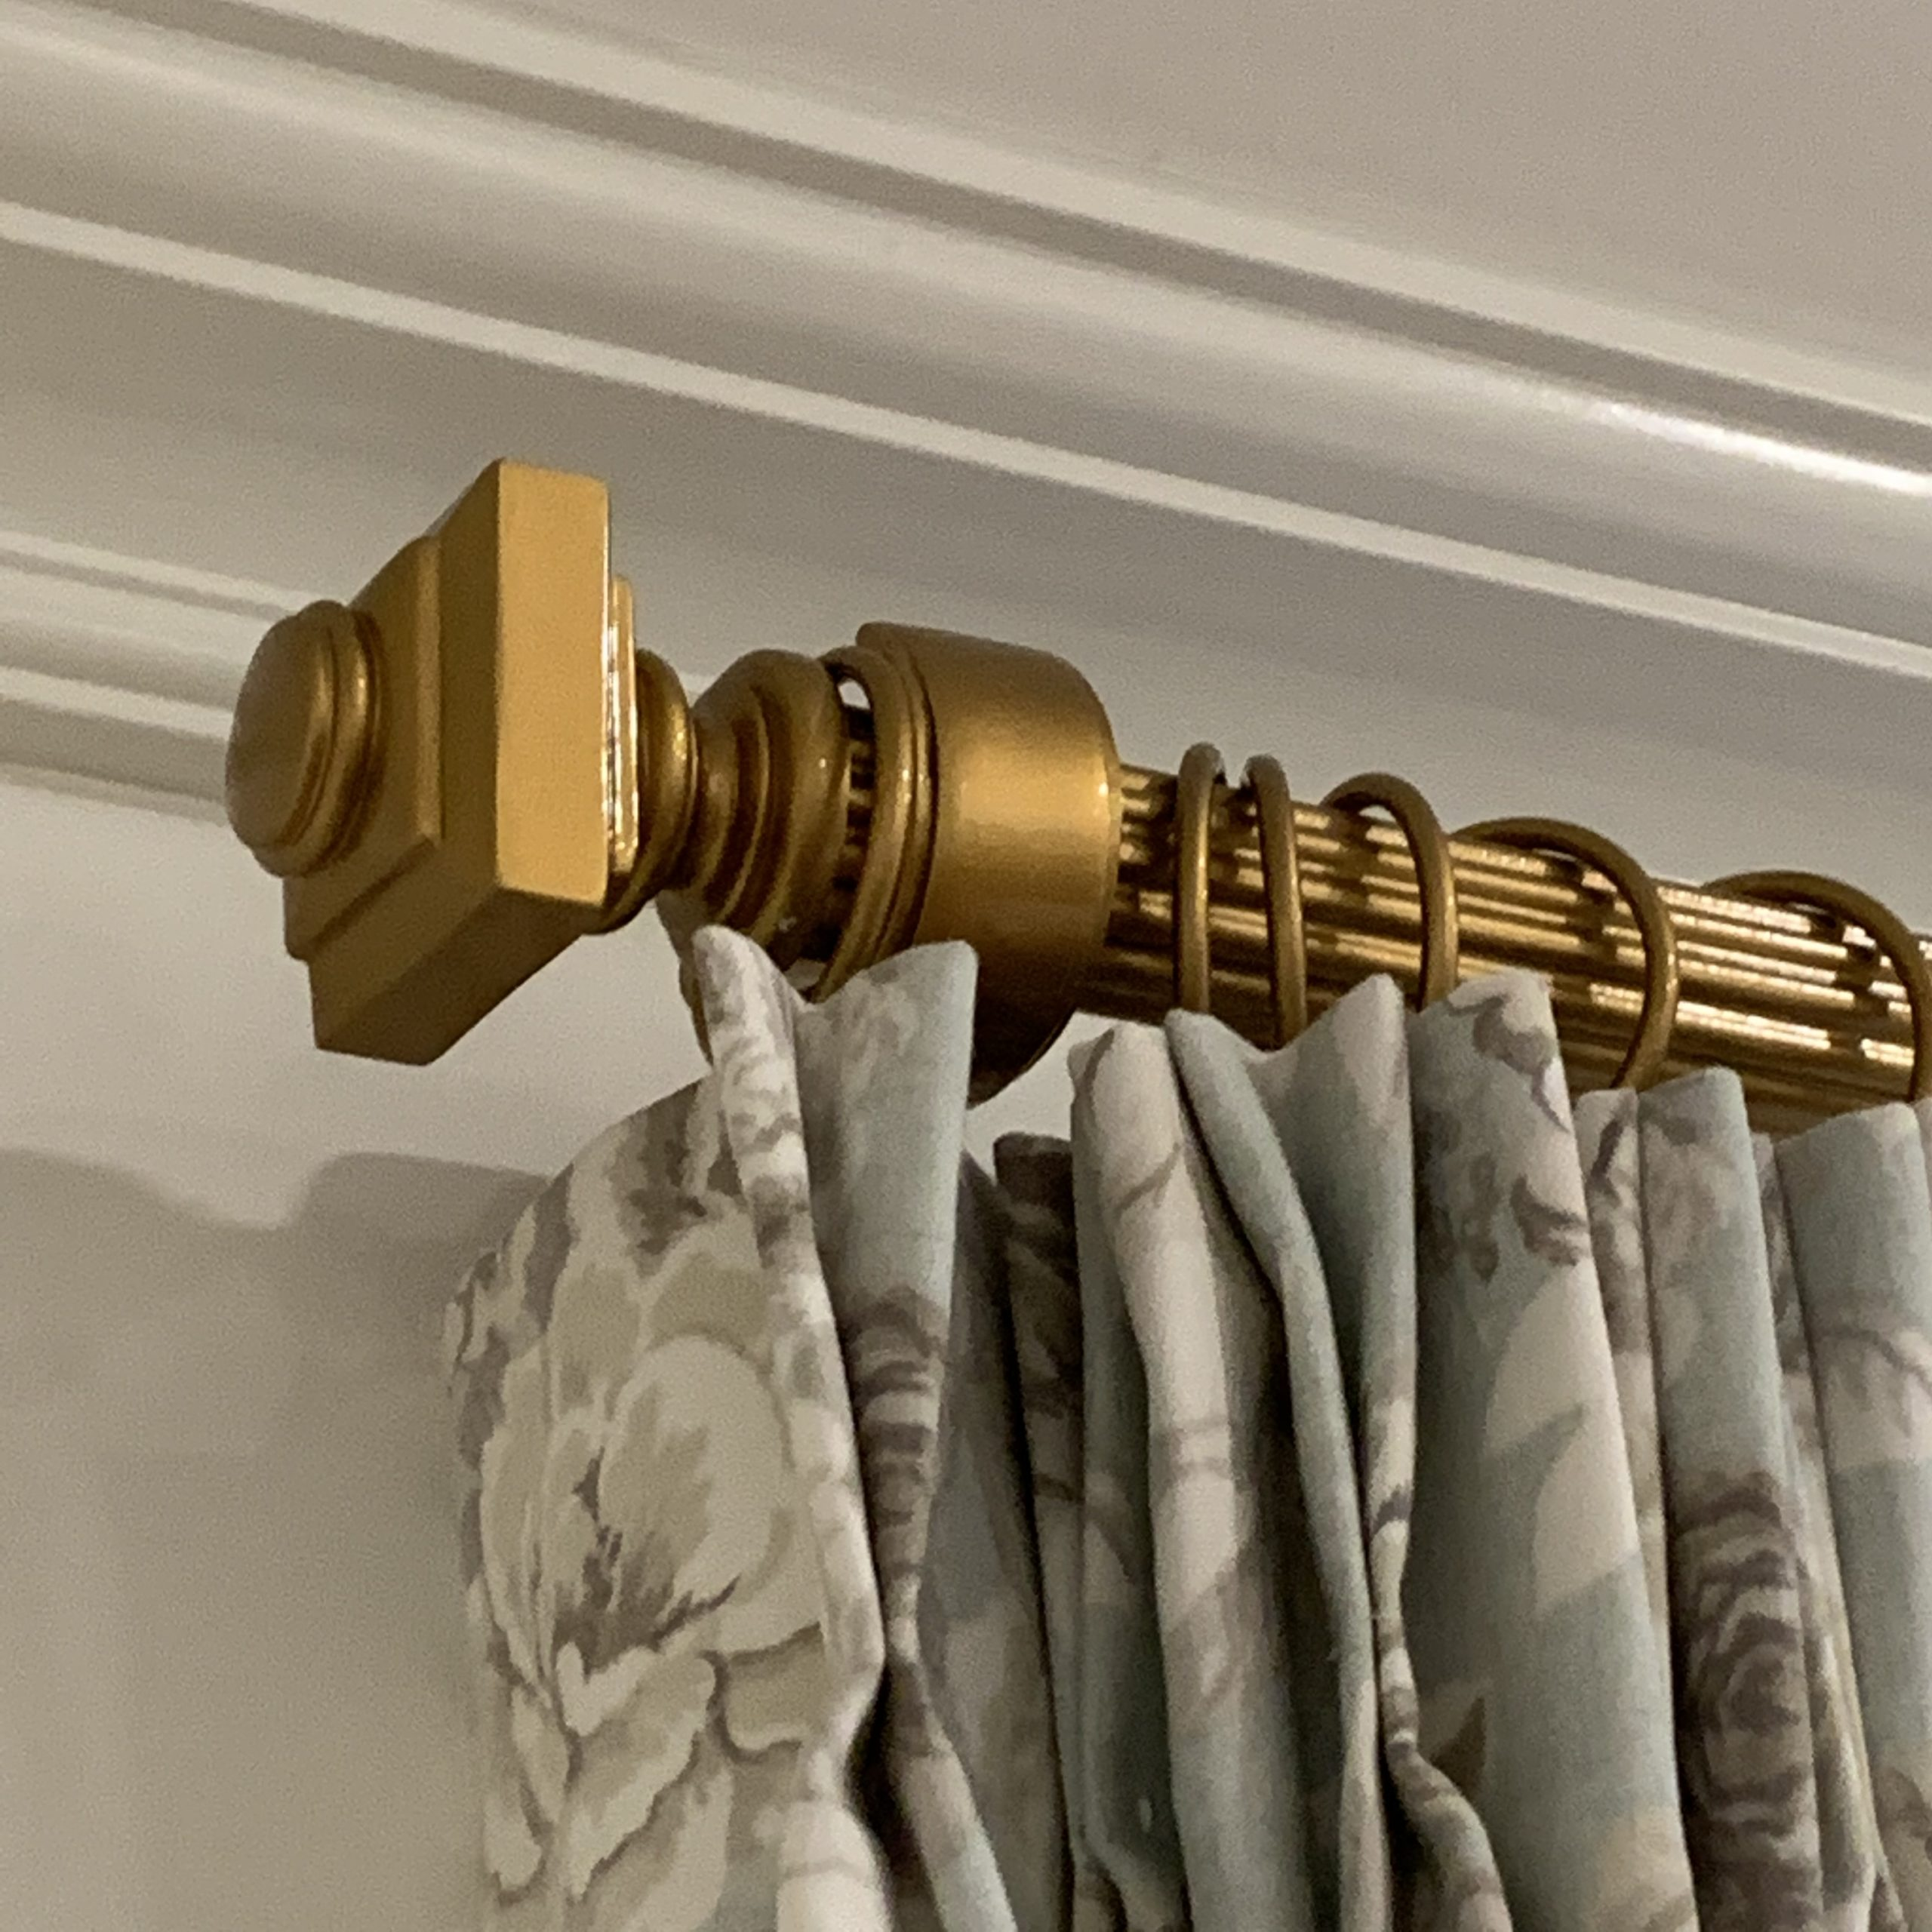 Designer Drapery Hardware - Jewelry for Your Window Treatments